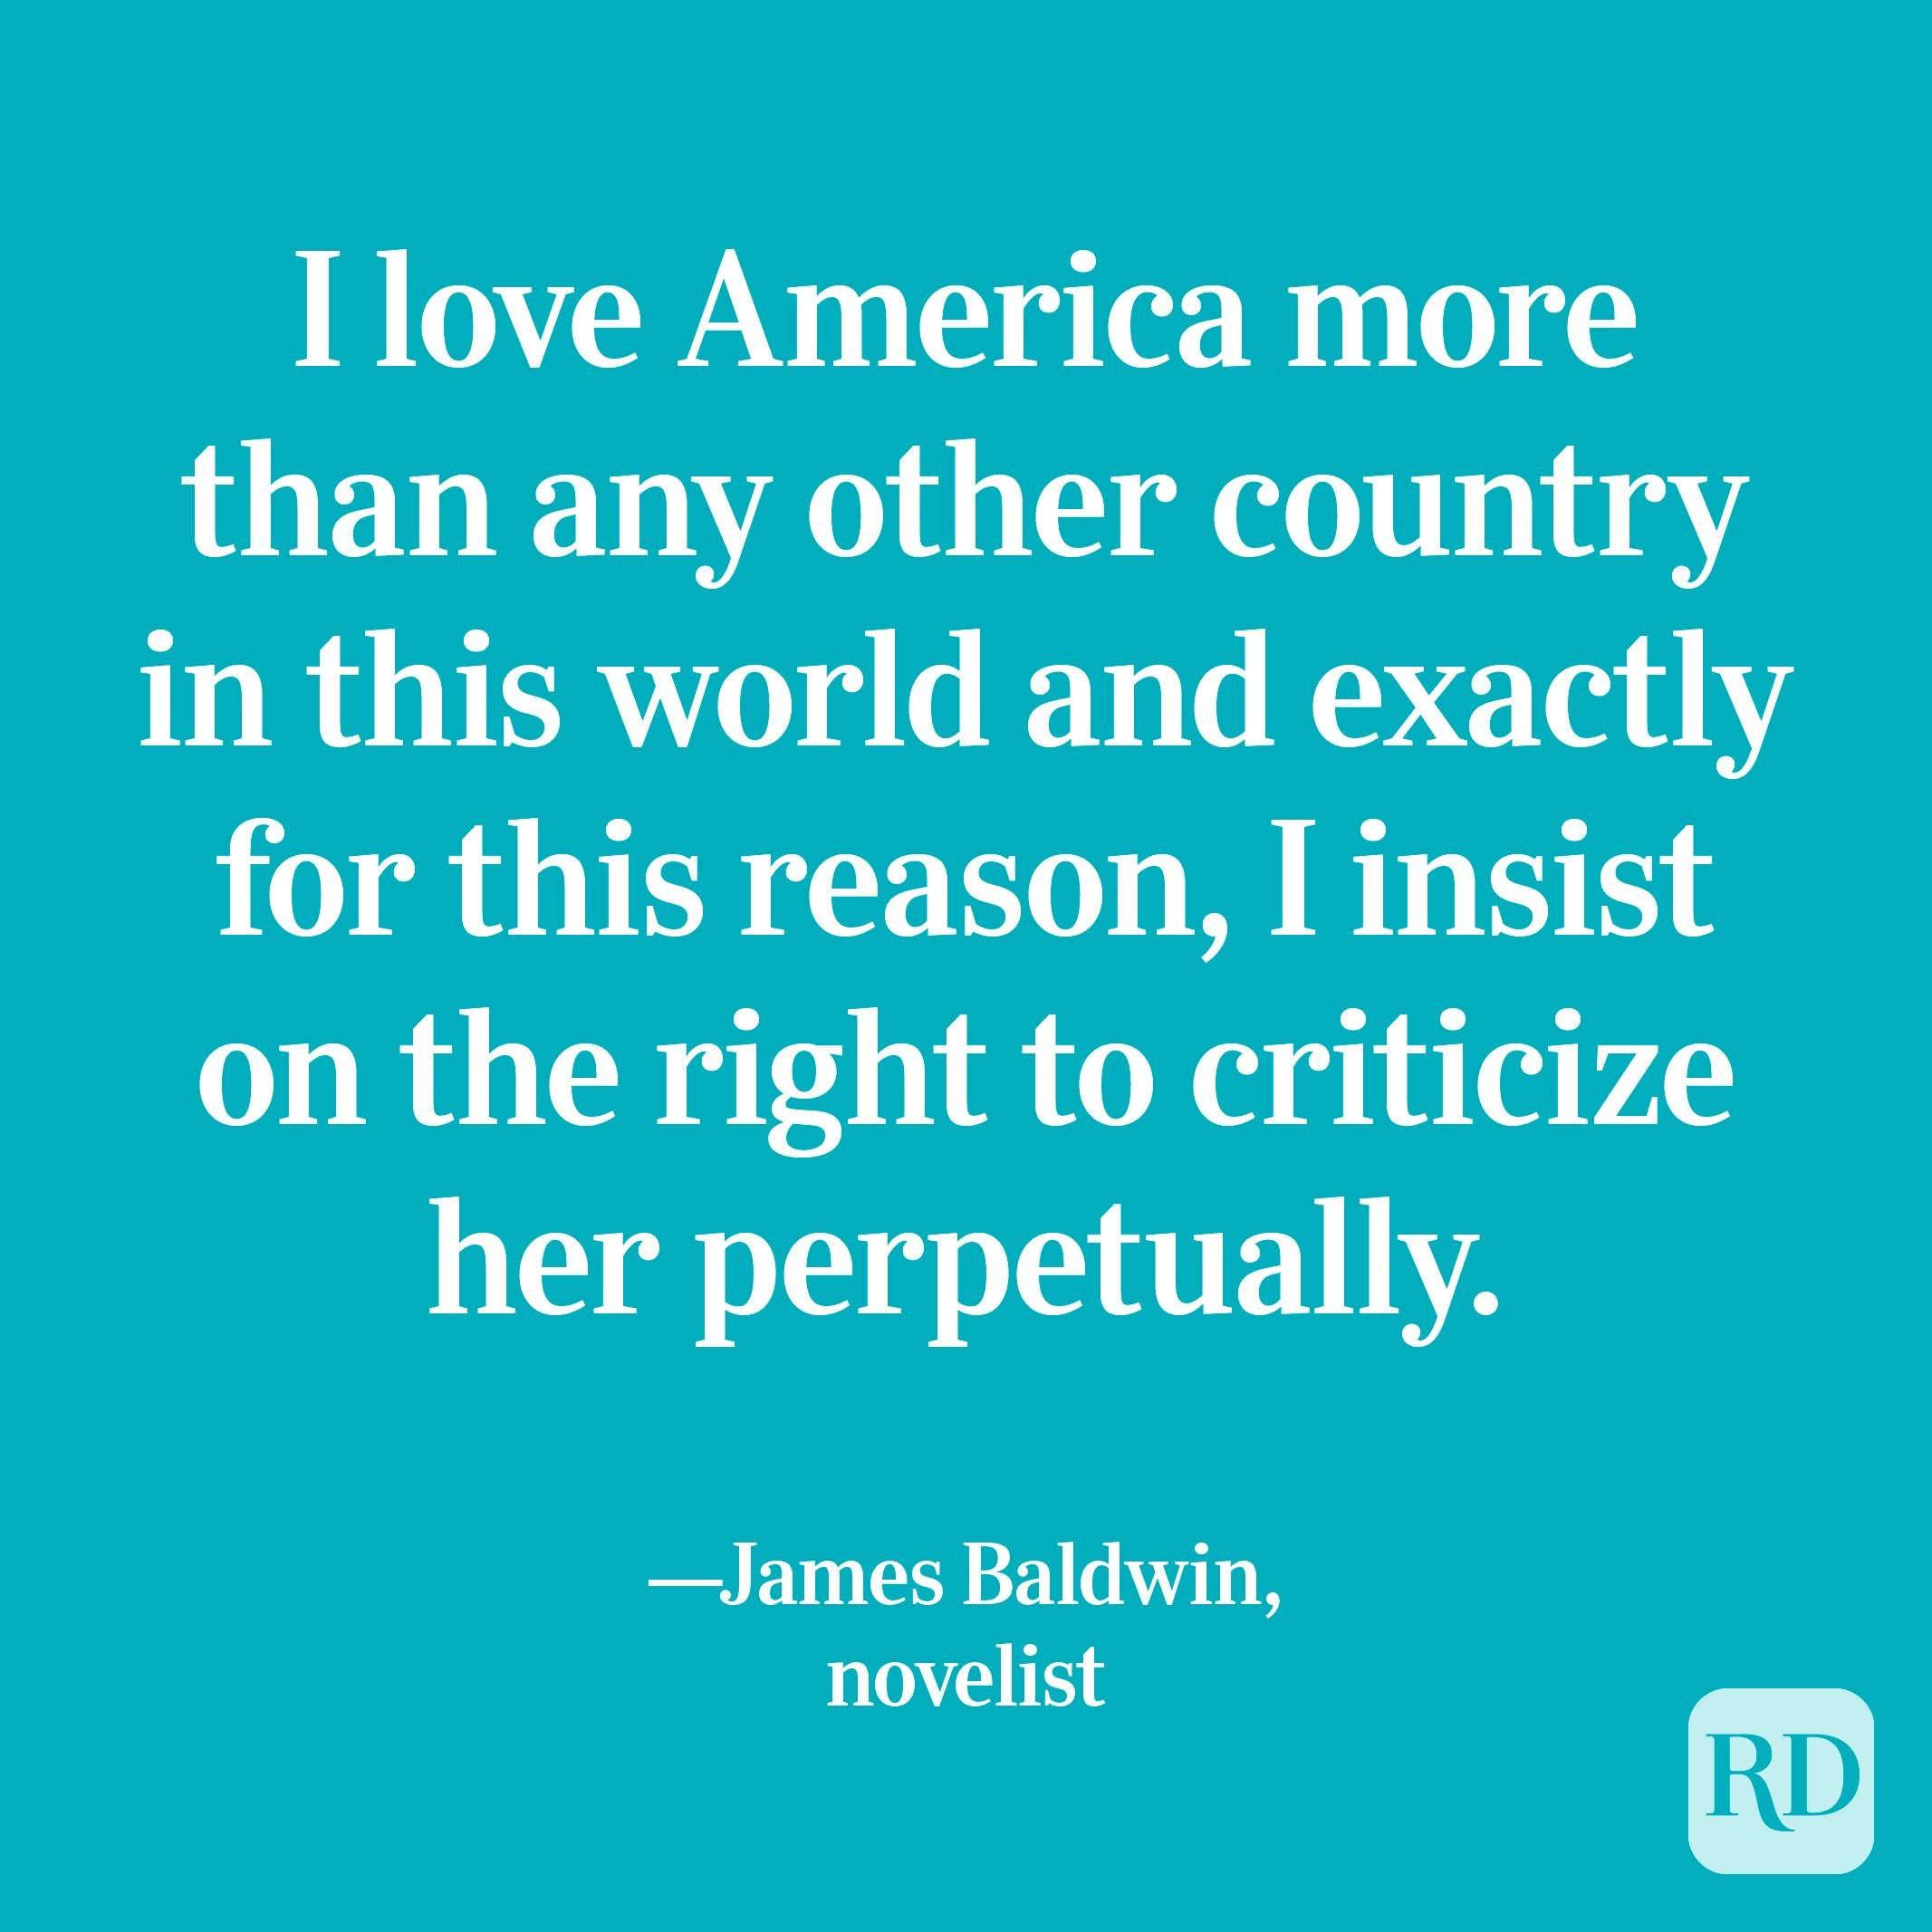 """""""I love America more than any other country in this world and exactly for this reason, I insist on the right to criticize her perpetually."""" —James Baldwin, novelist"""